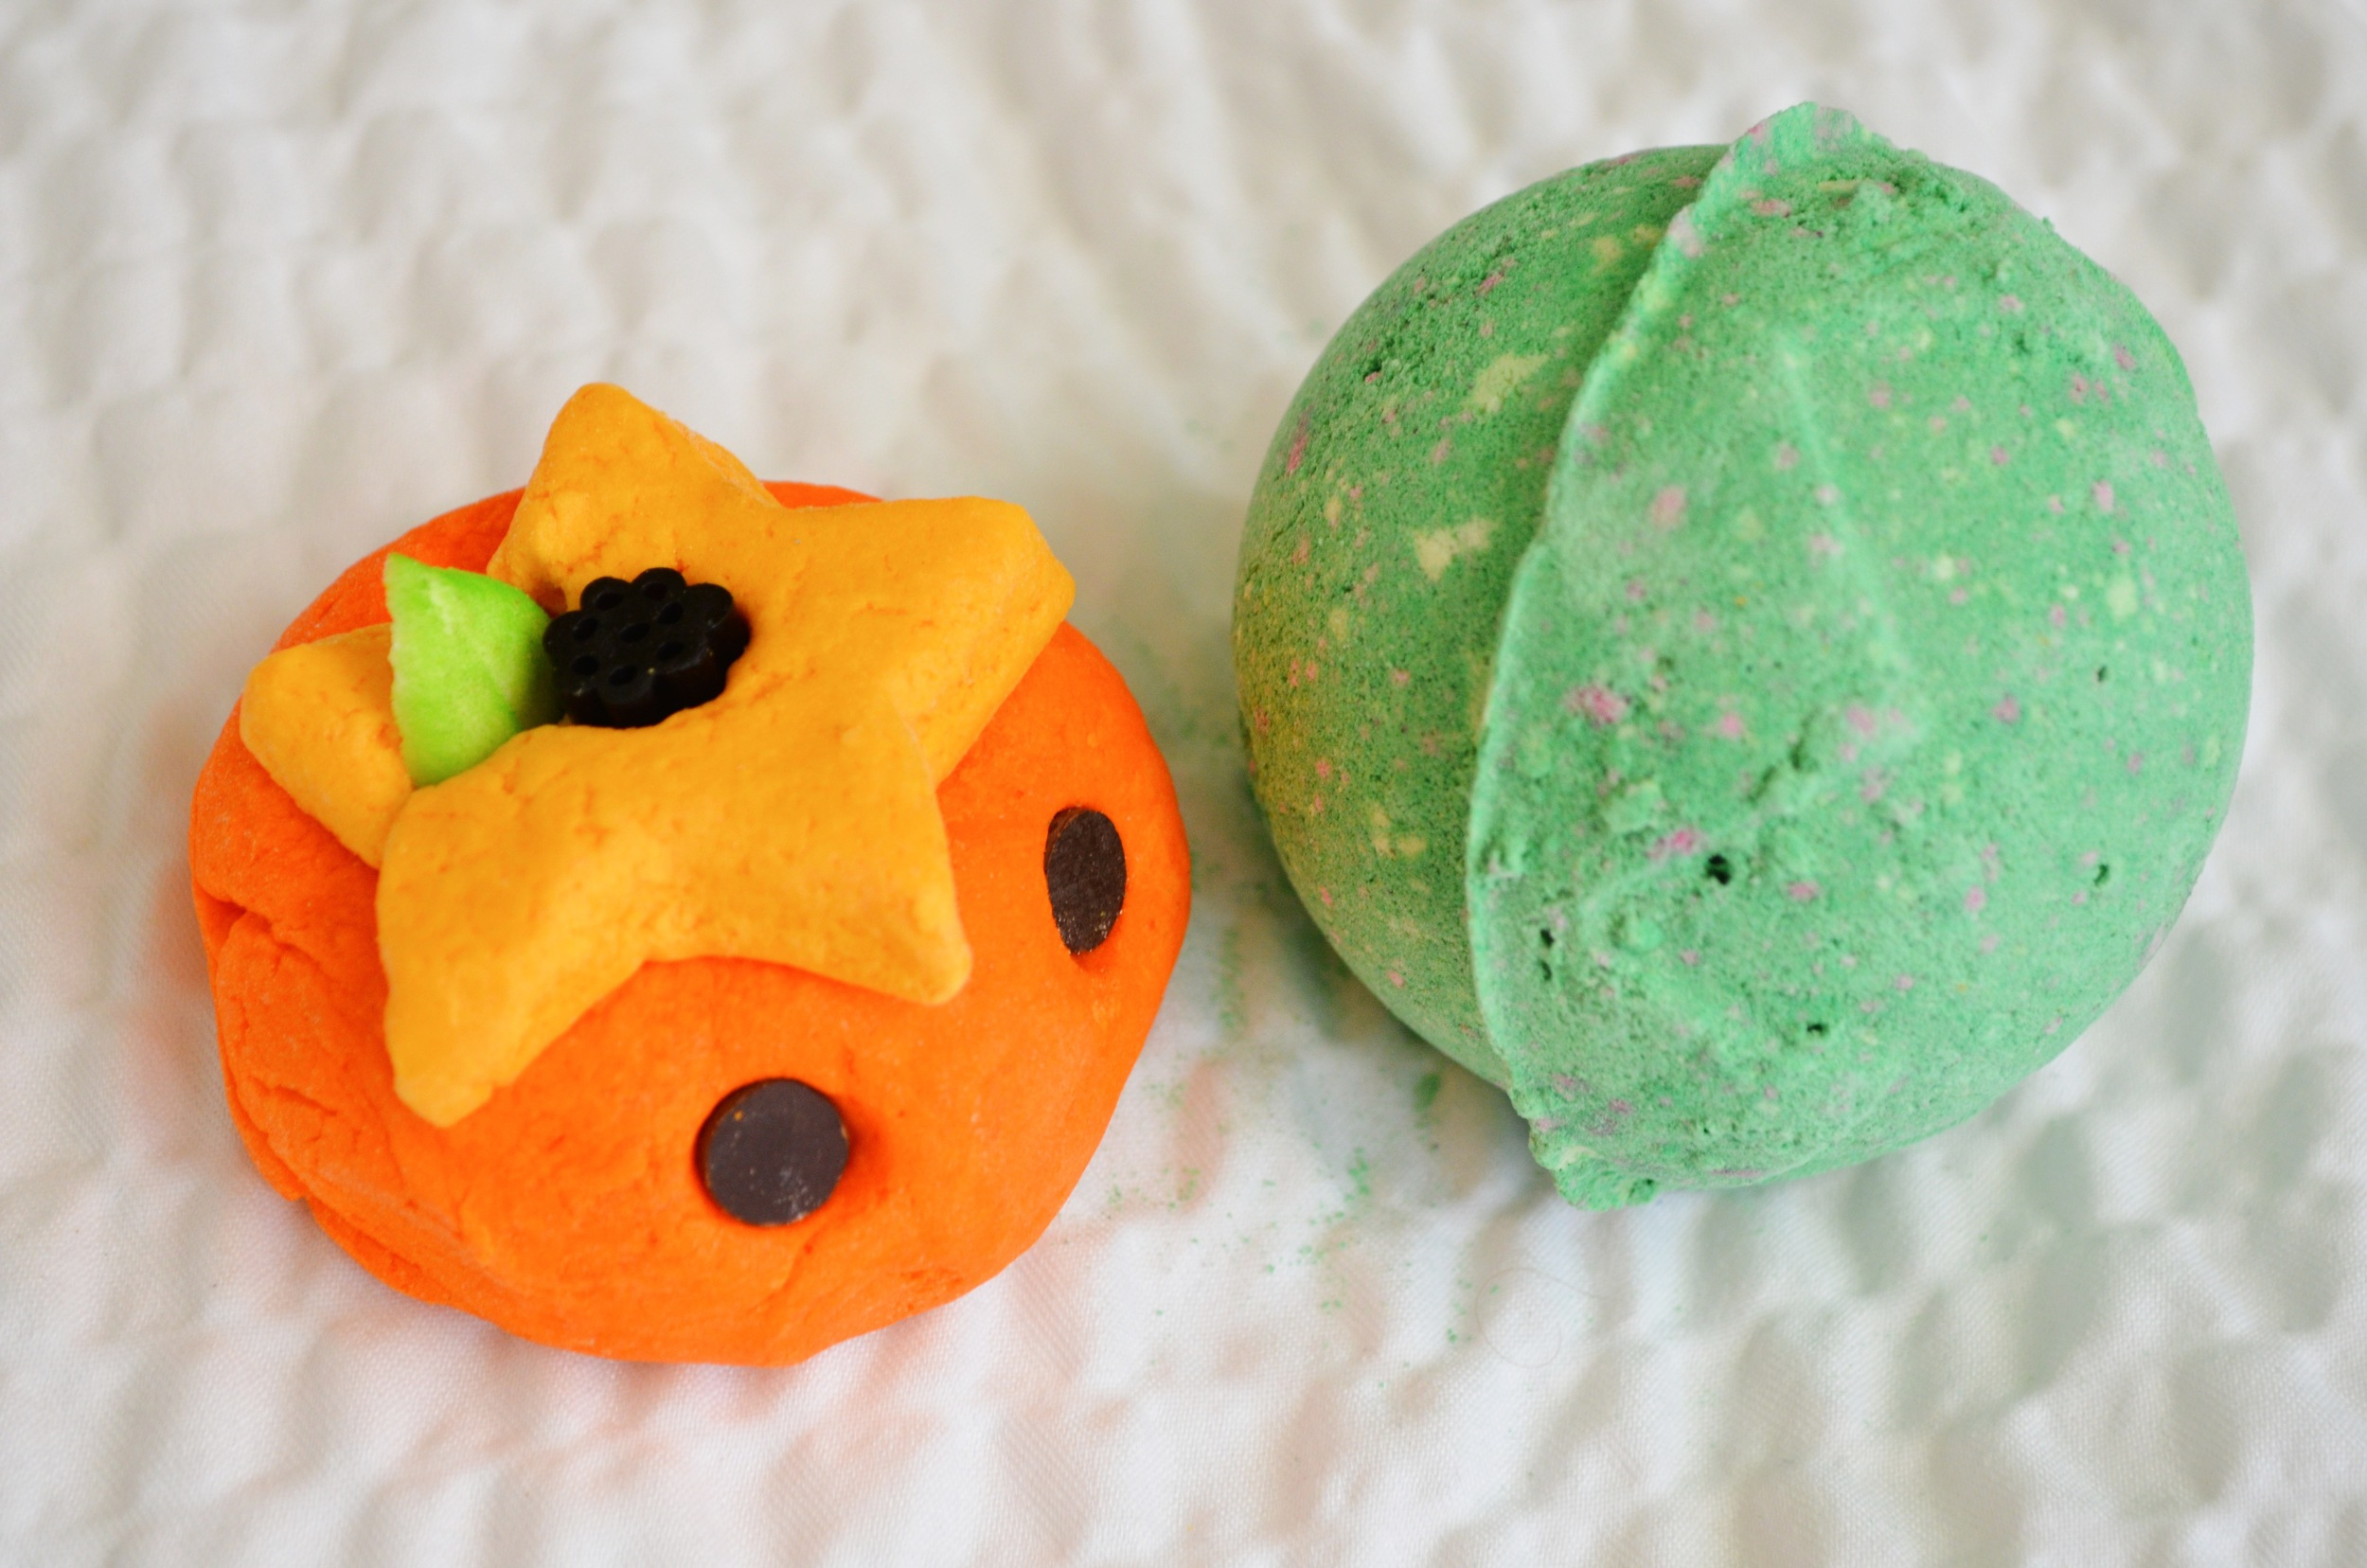 lush pumkin bubble bar review, lush lord of misrule bath bomb review, lush halloween 2013